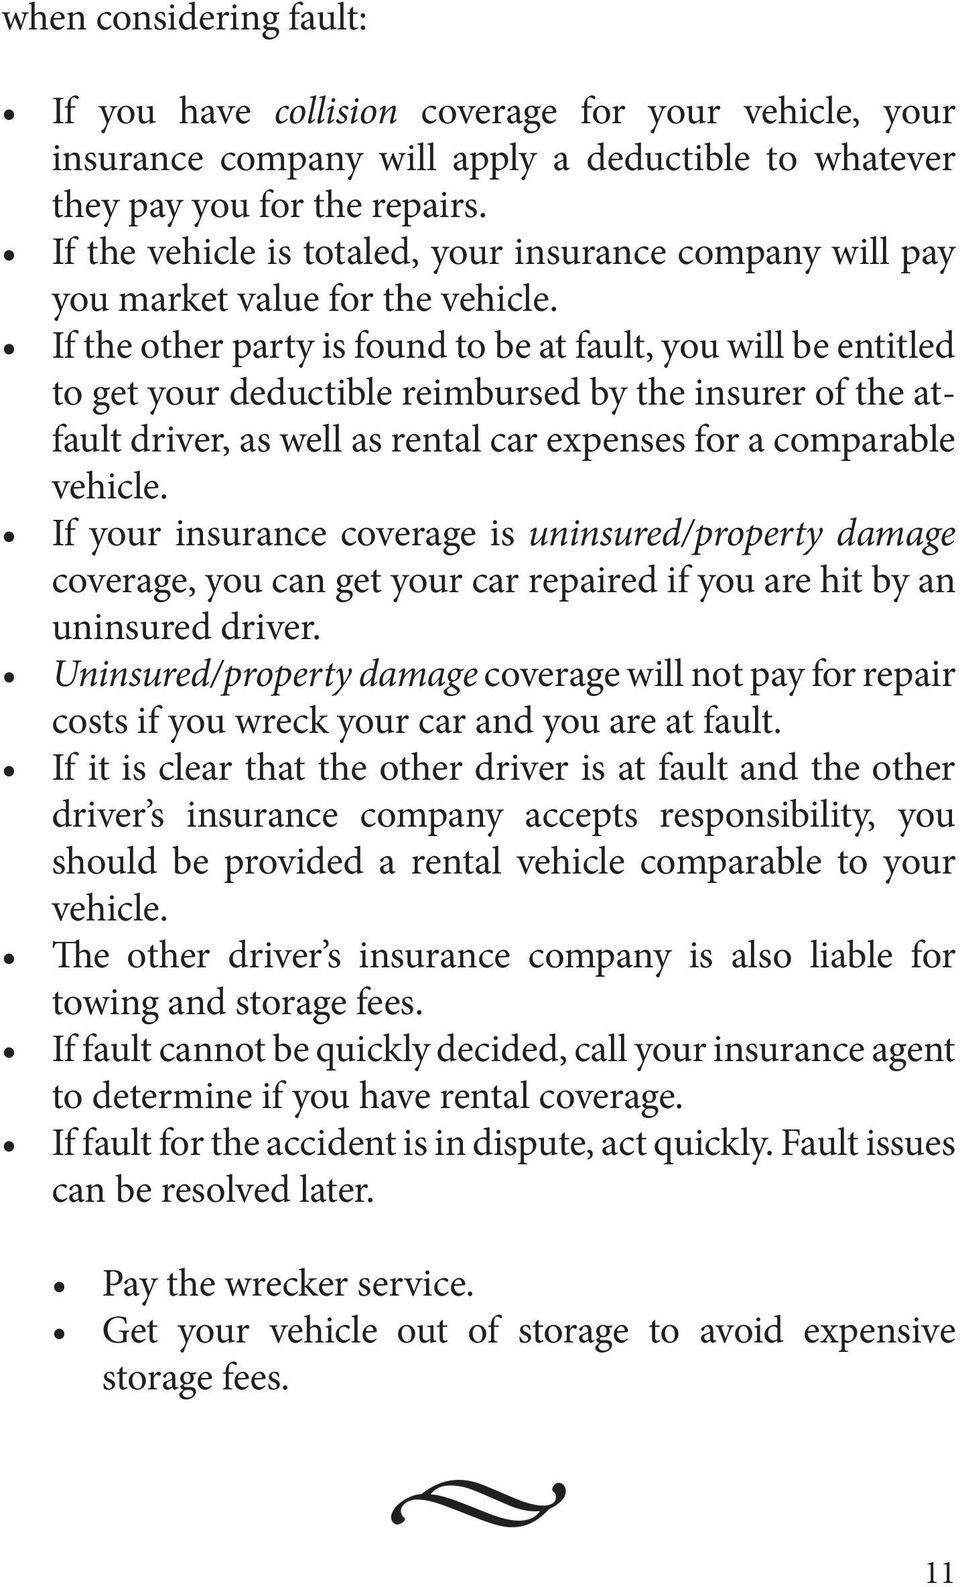 If the other party is found to be at fault, you will be entitled to get your deductible reimbursed by the insurer of the atfault driver, as well as rental car expenses for a comparable vehicle.